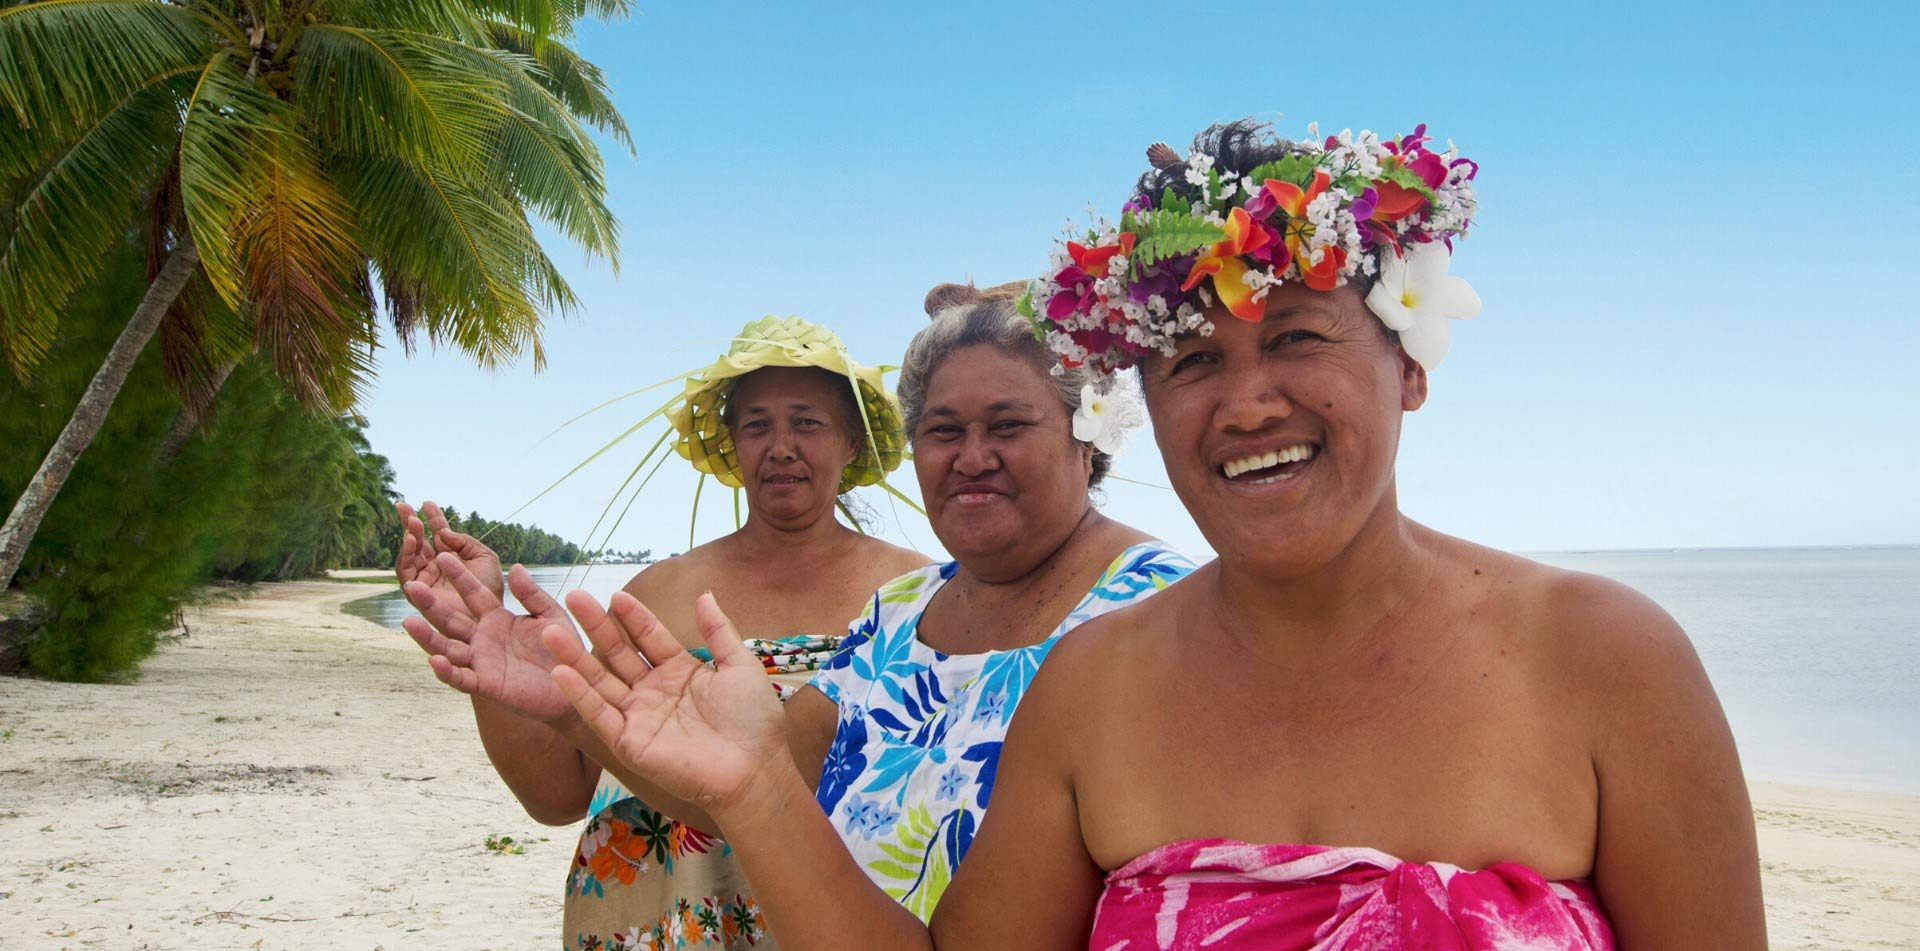 South Pacific Tahiti local women smiling waving colorful traditional attire tropical island - luxury vacation destinations